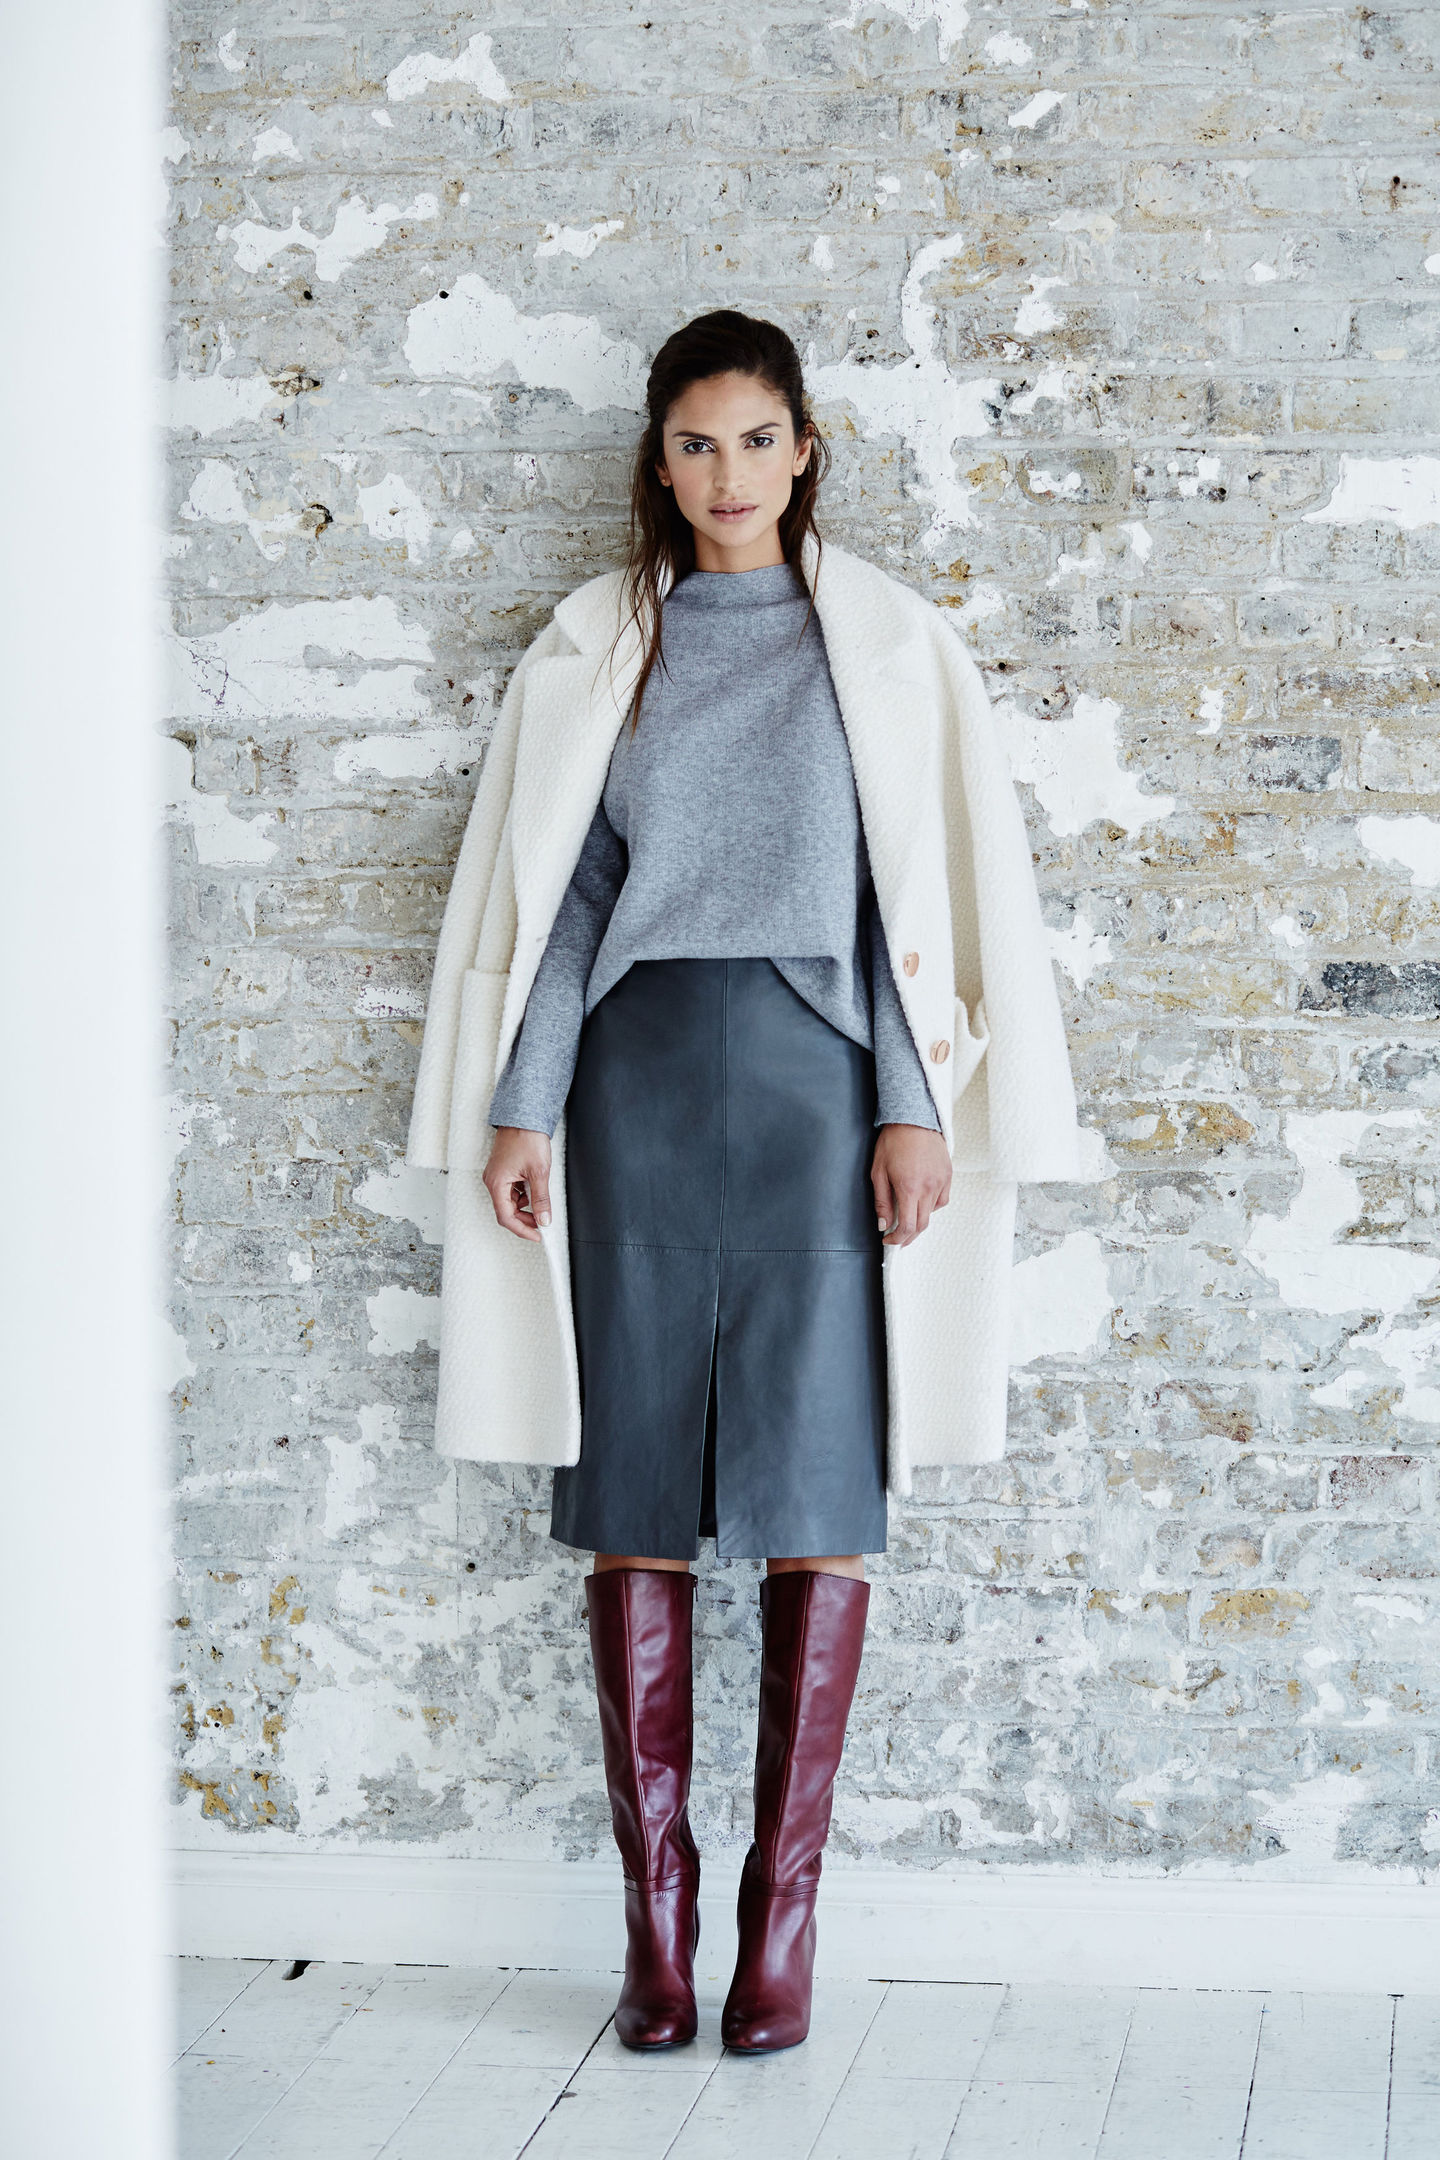 Tu Premium Textured Boucle Crombie Coat, Premium Twinset Knit, Premium Leather Pencil Skirt, Premium Long Leather Boots, all available from Sainsburys.